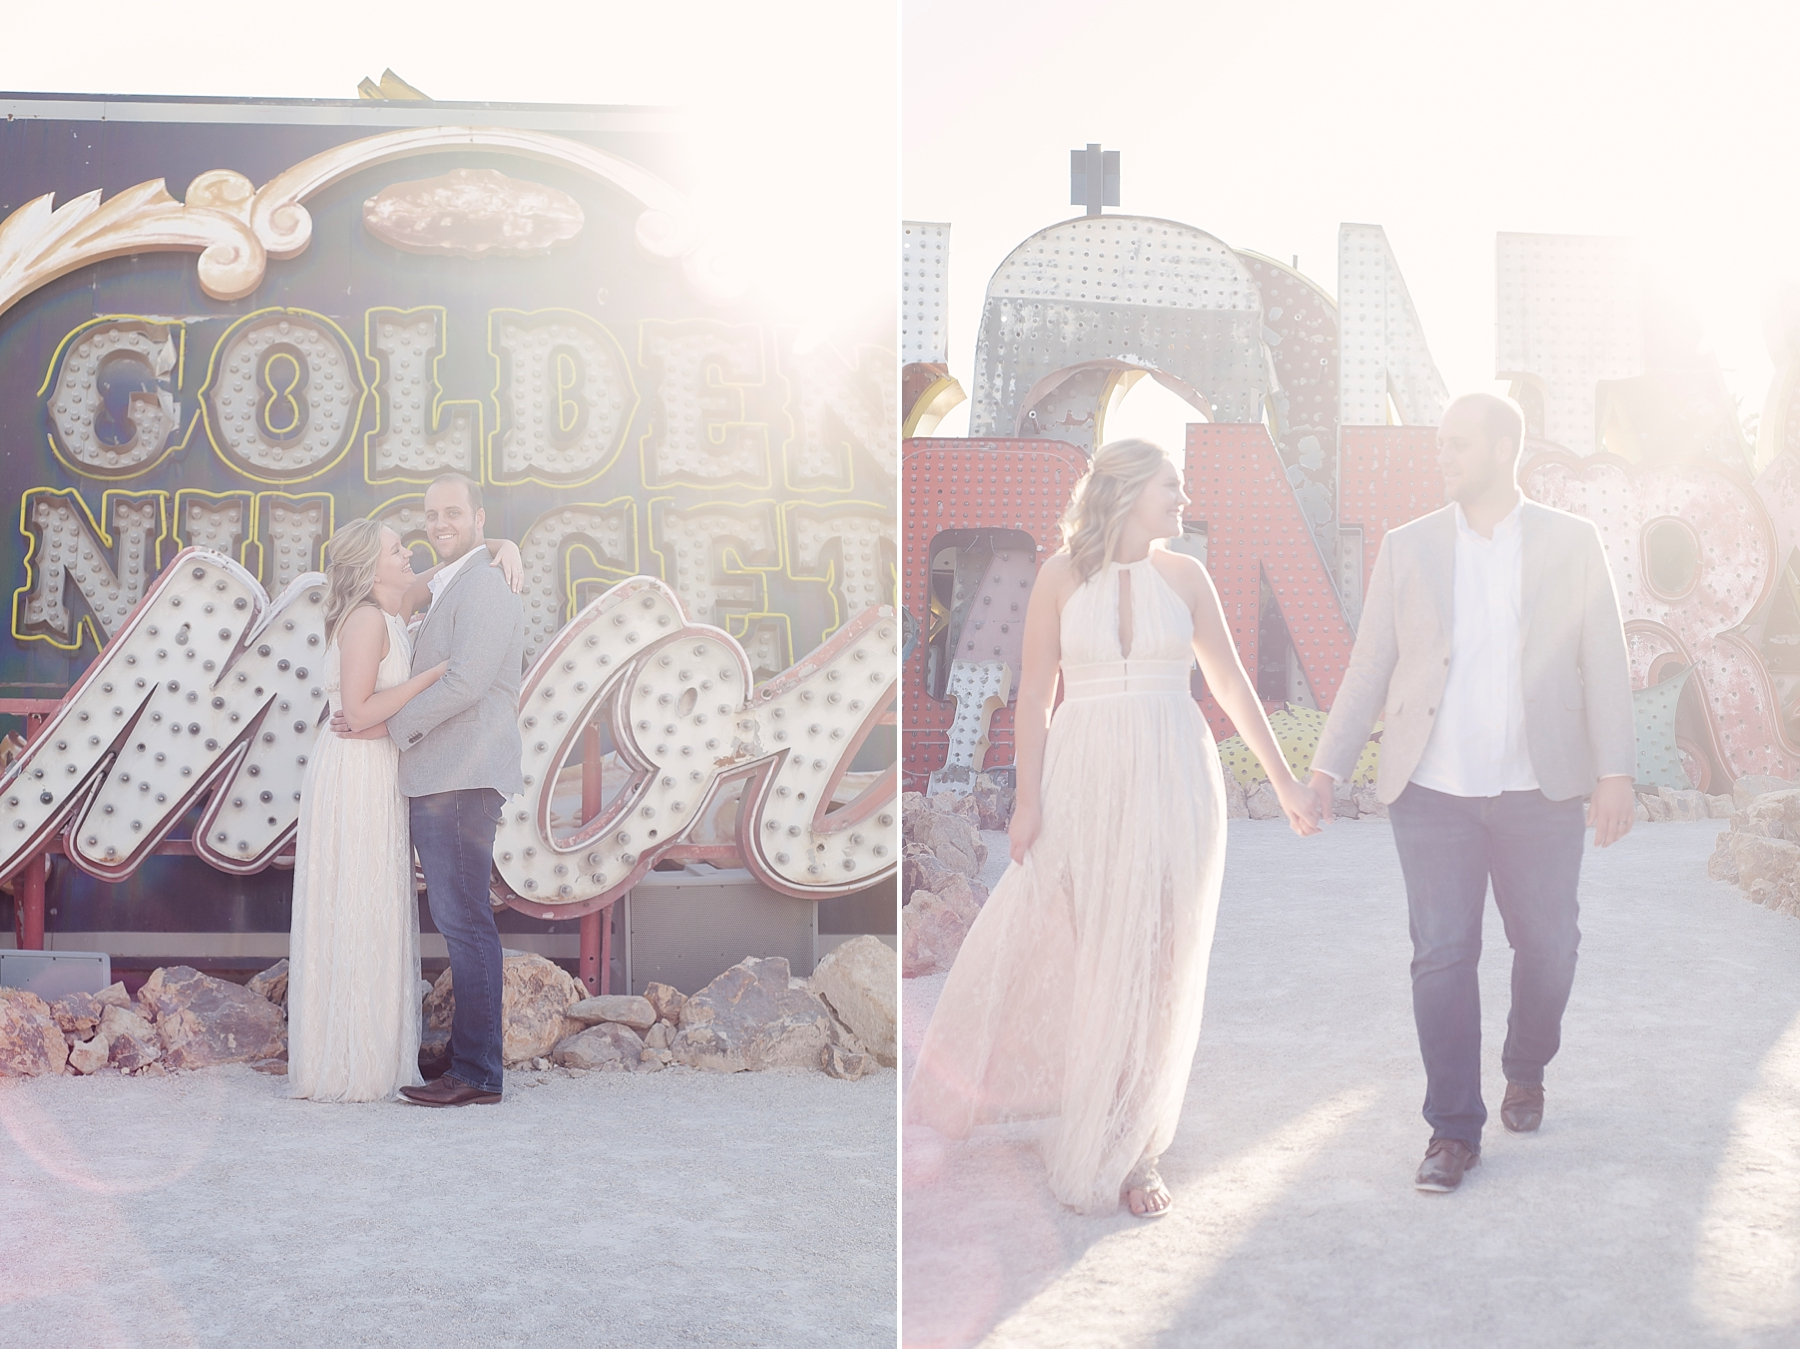 Neon_Museum_Downtown_Las_Vegas_elopement_photos-1.jpg